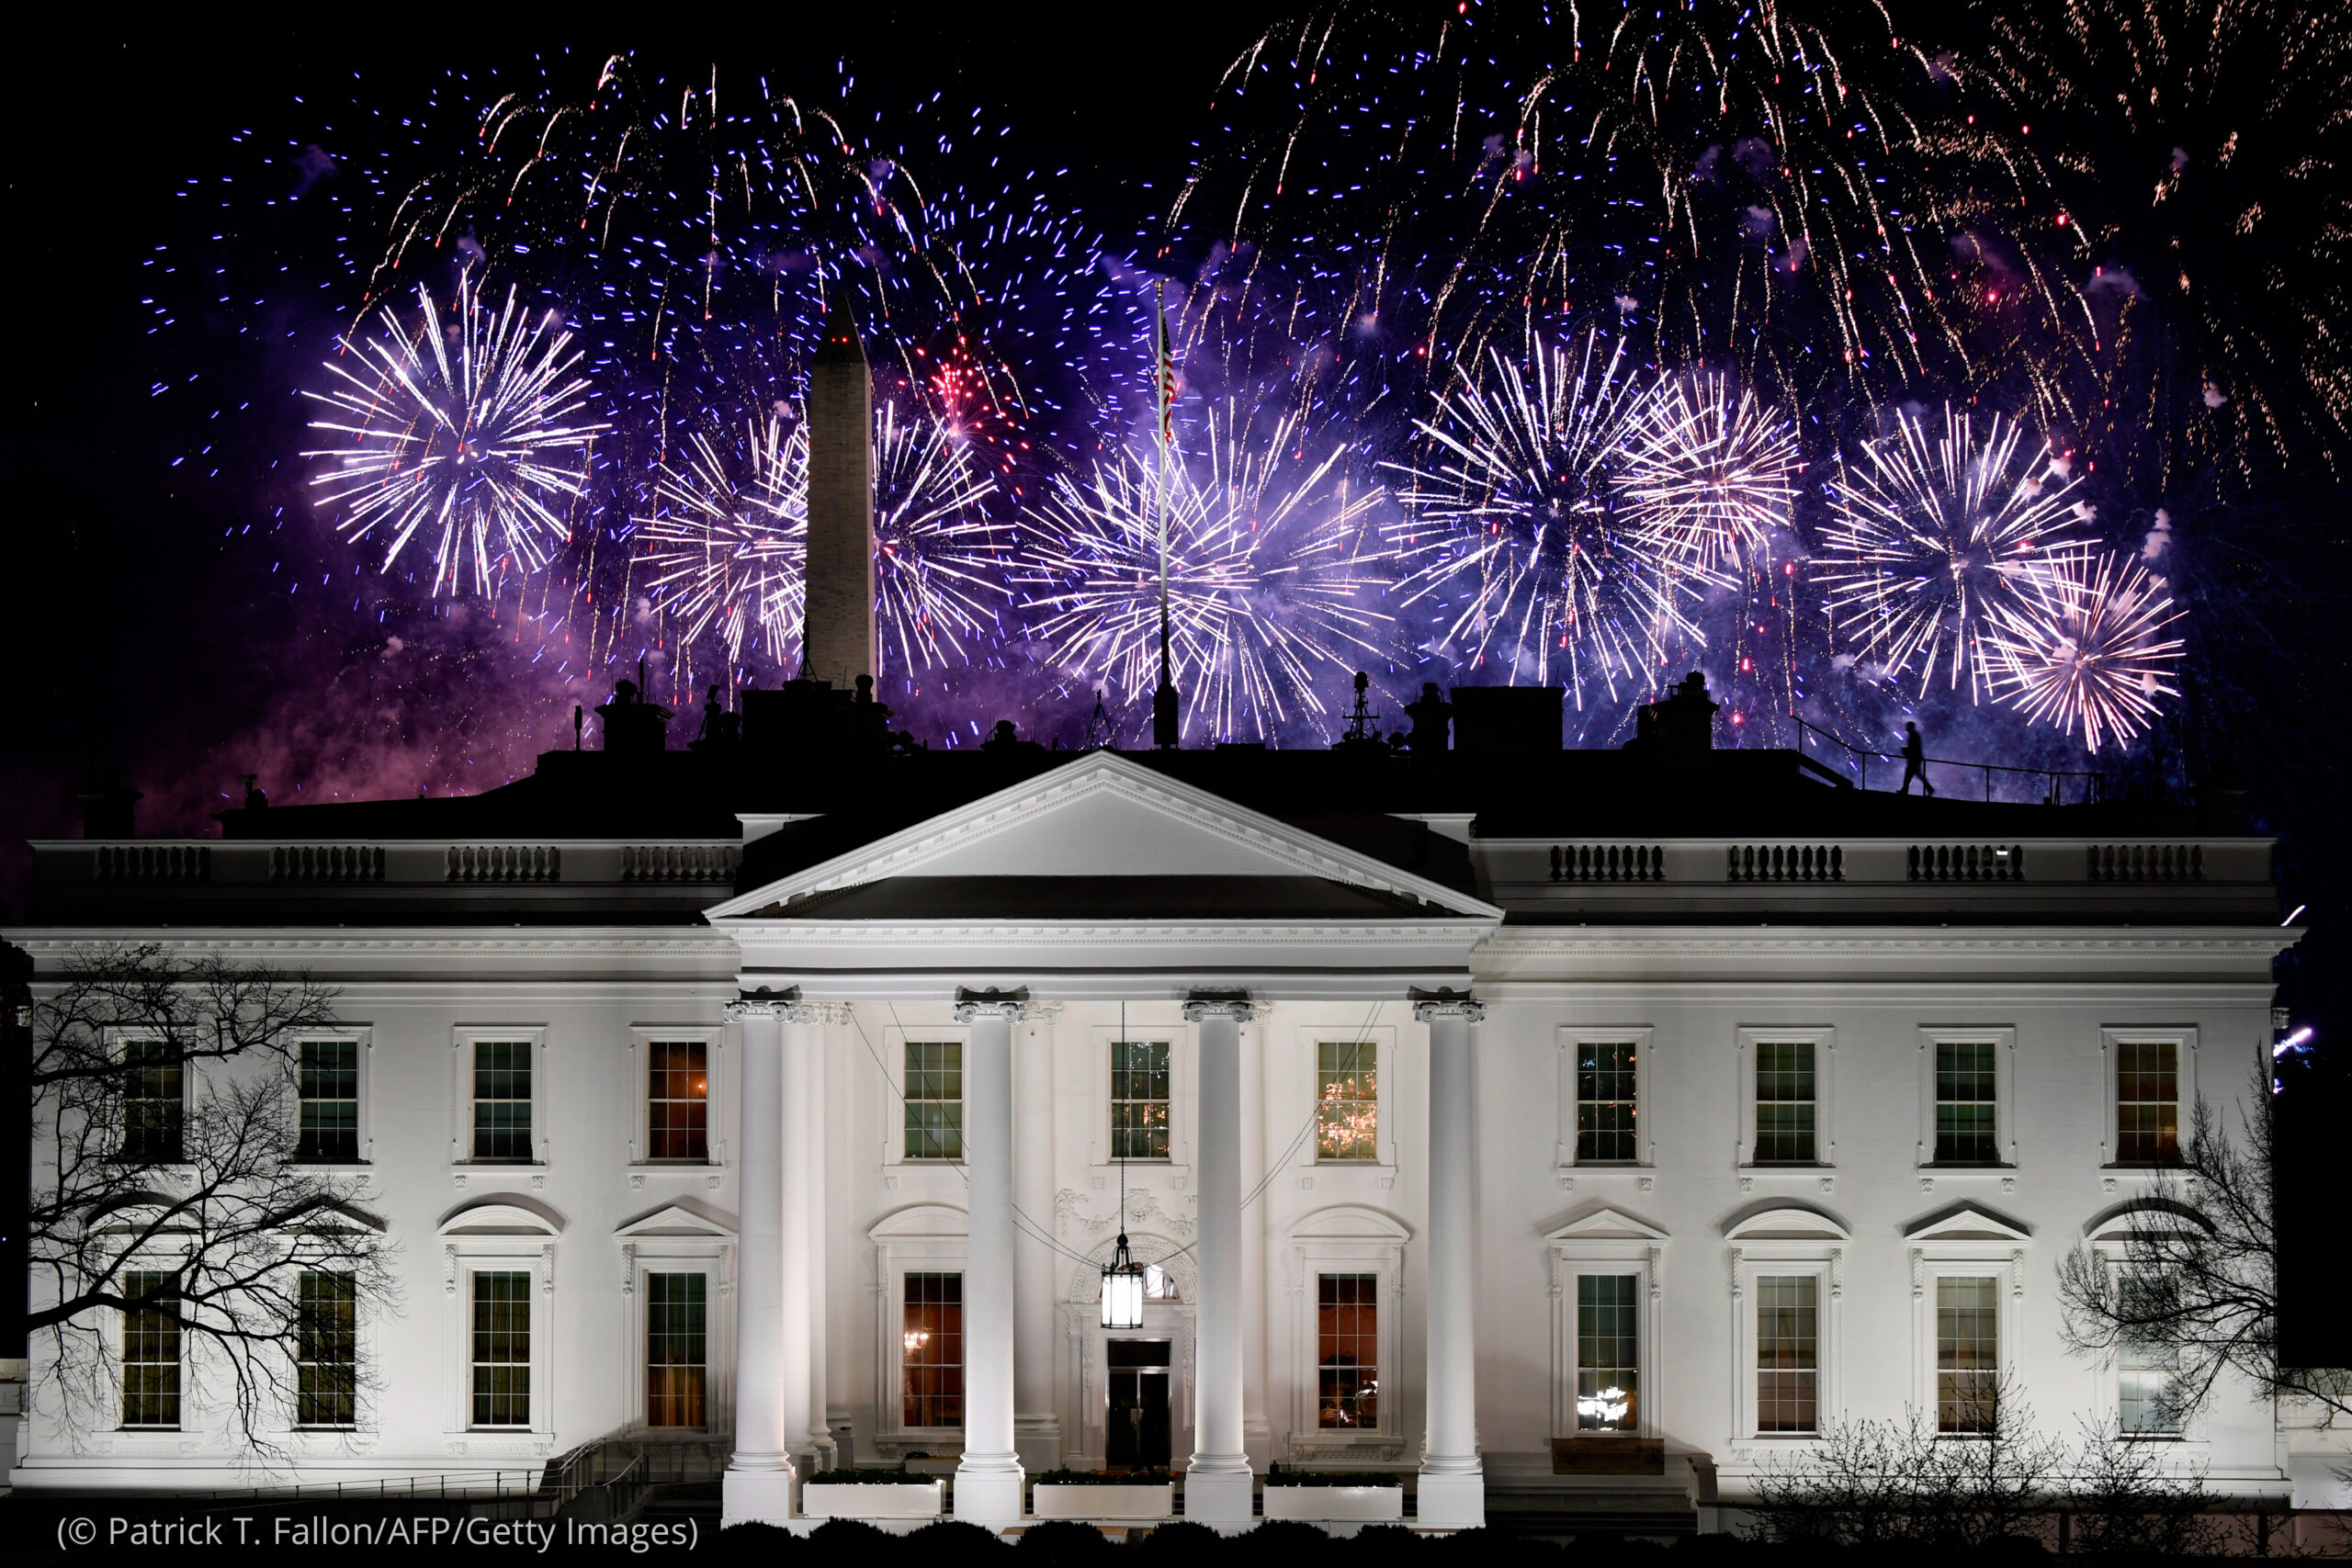 Illuminated White House with Washington Monument and fireworks in background (© Patrick T. Fallon/AFP/Getty Images)